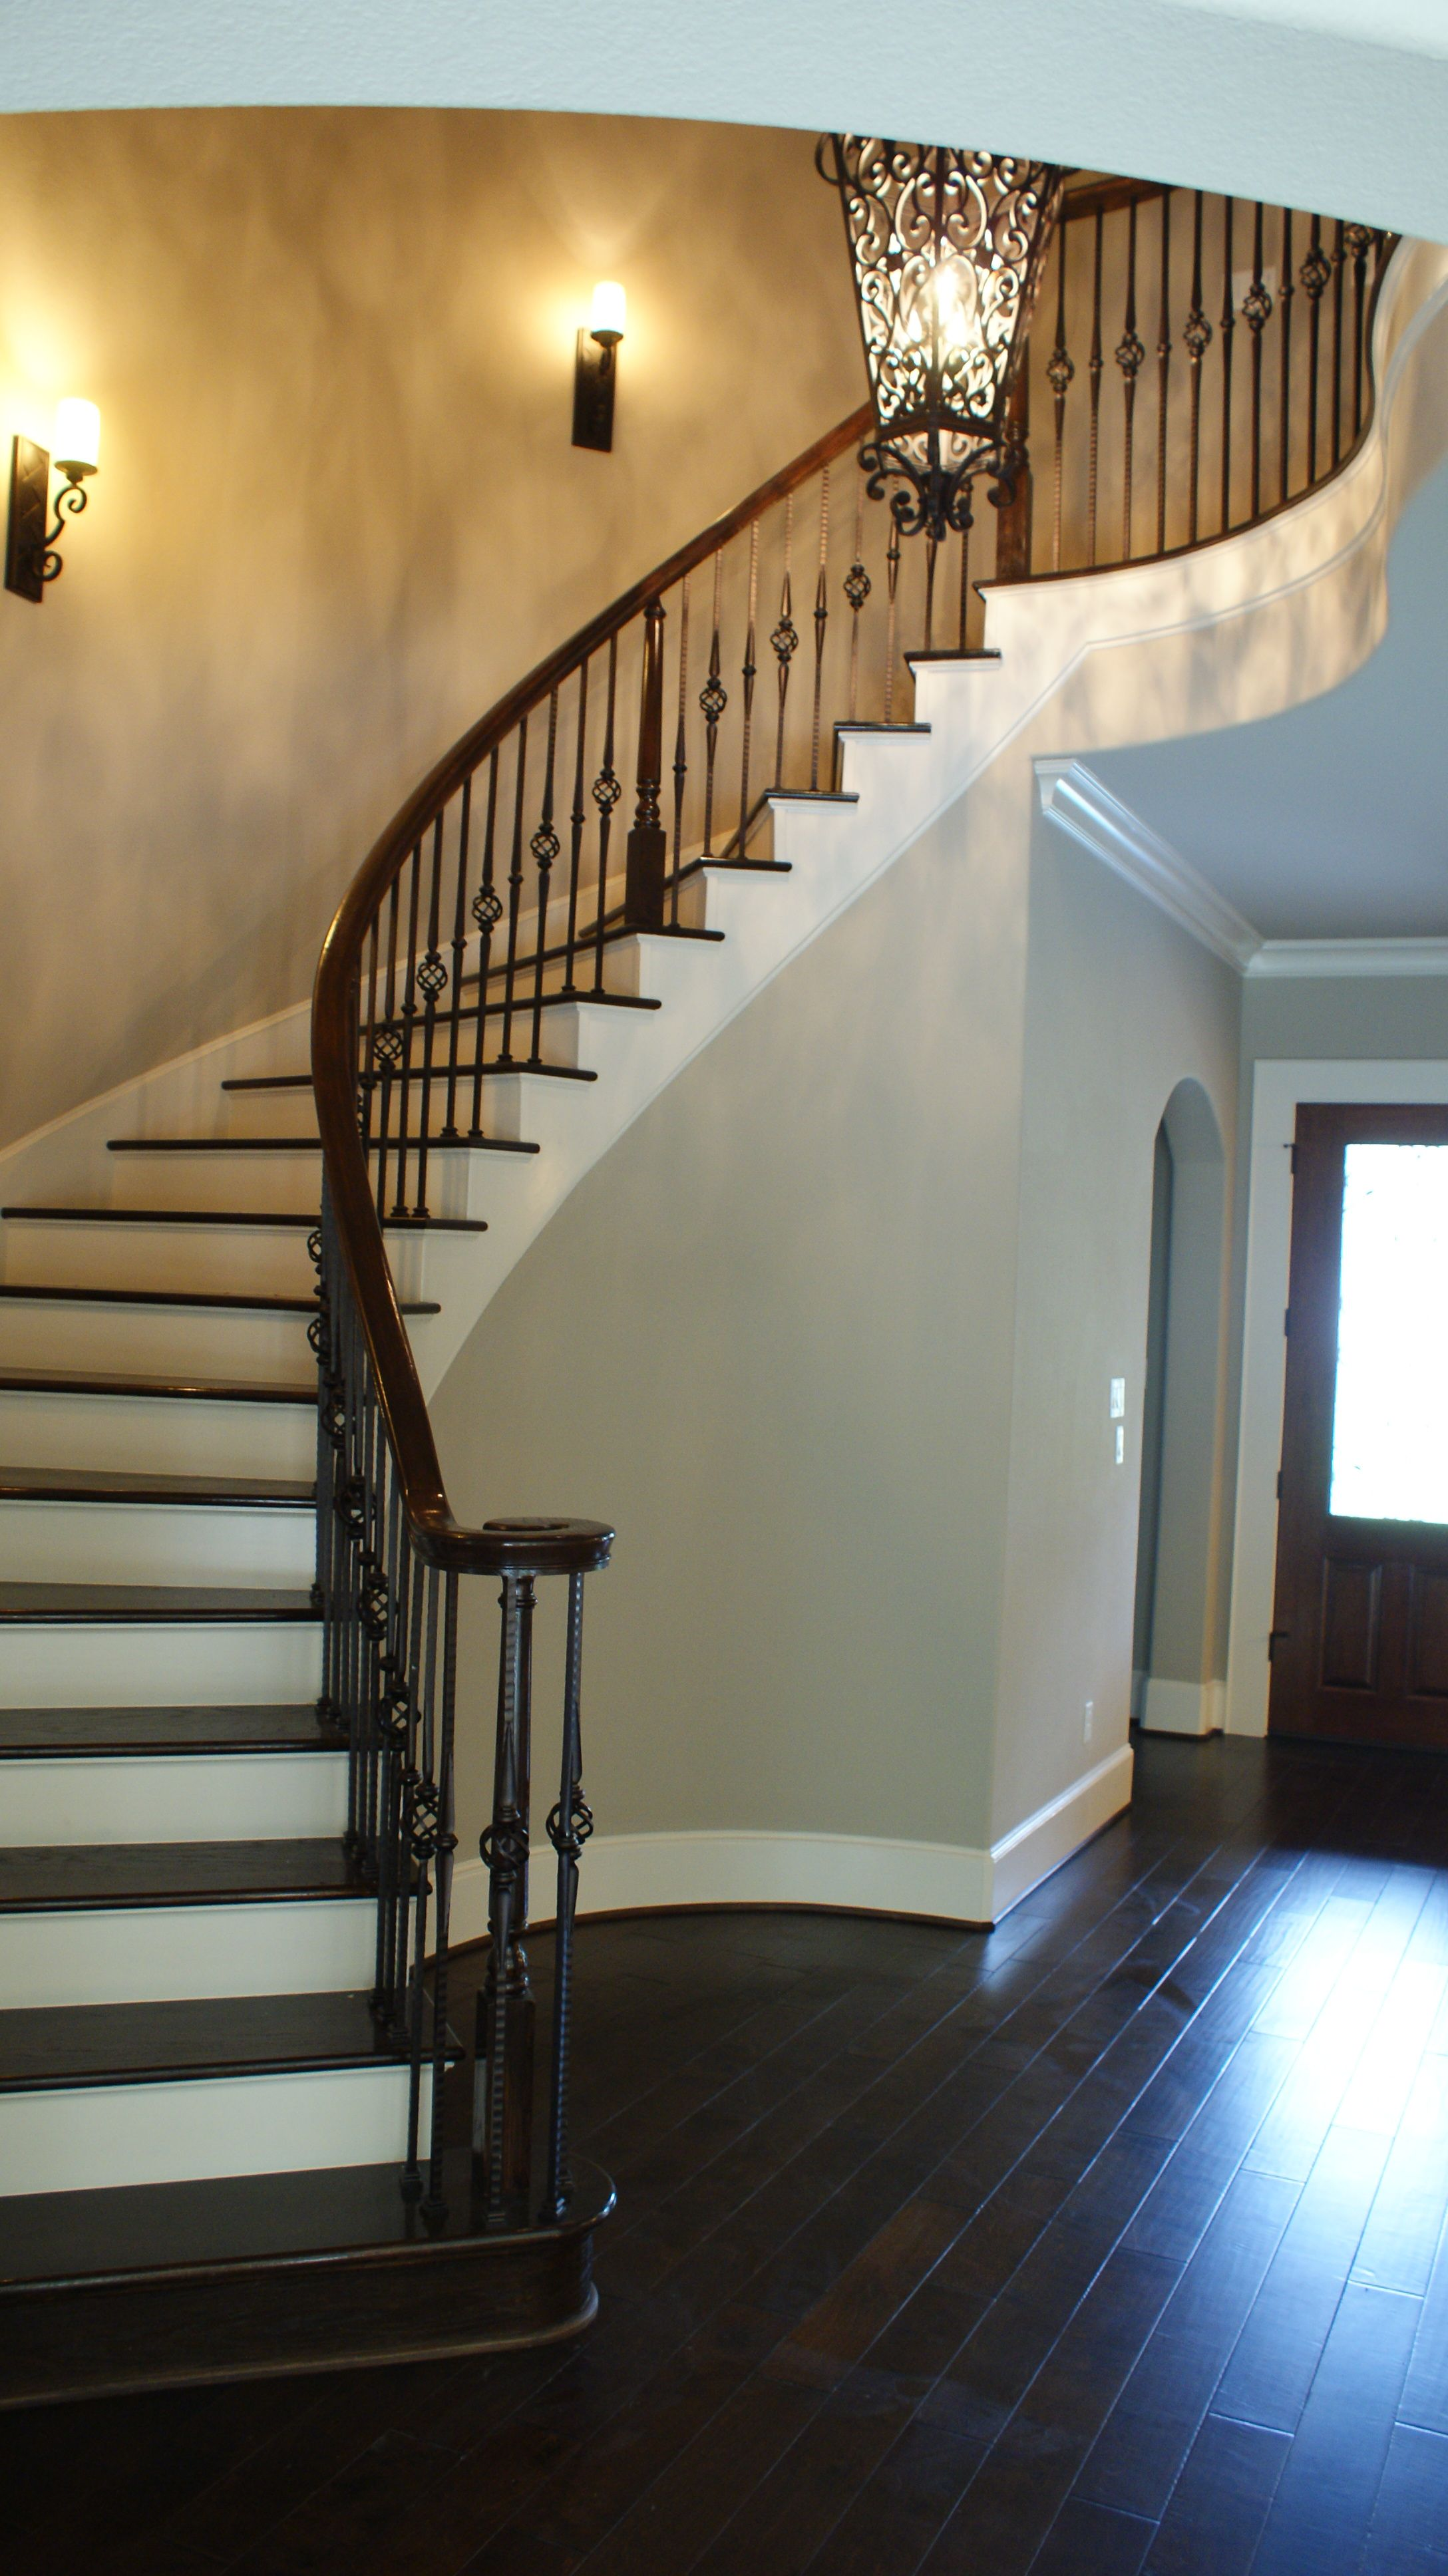 The pleted staircase using our powder coated wrought iron